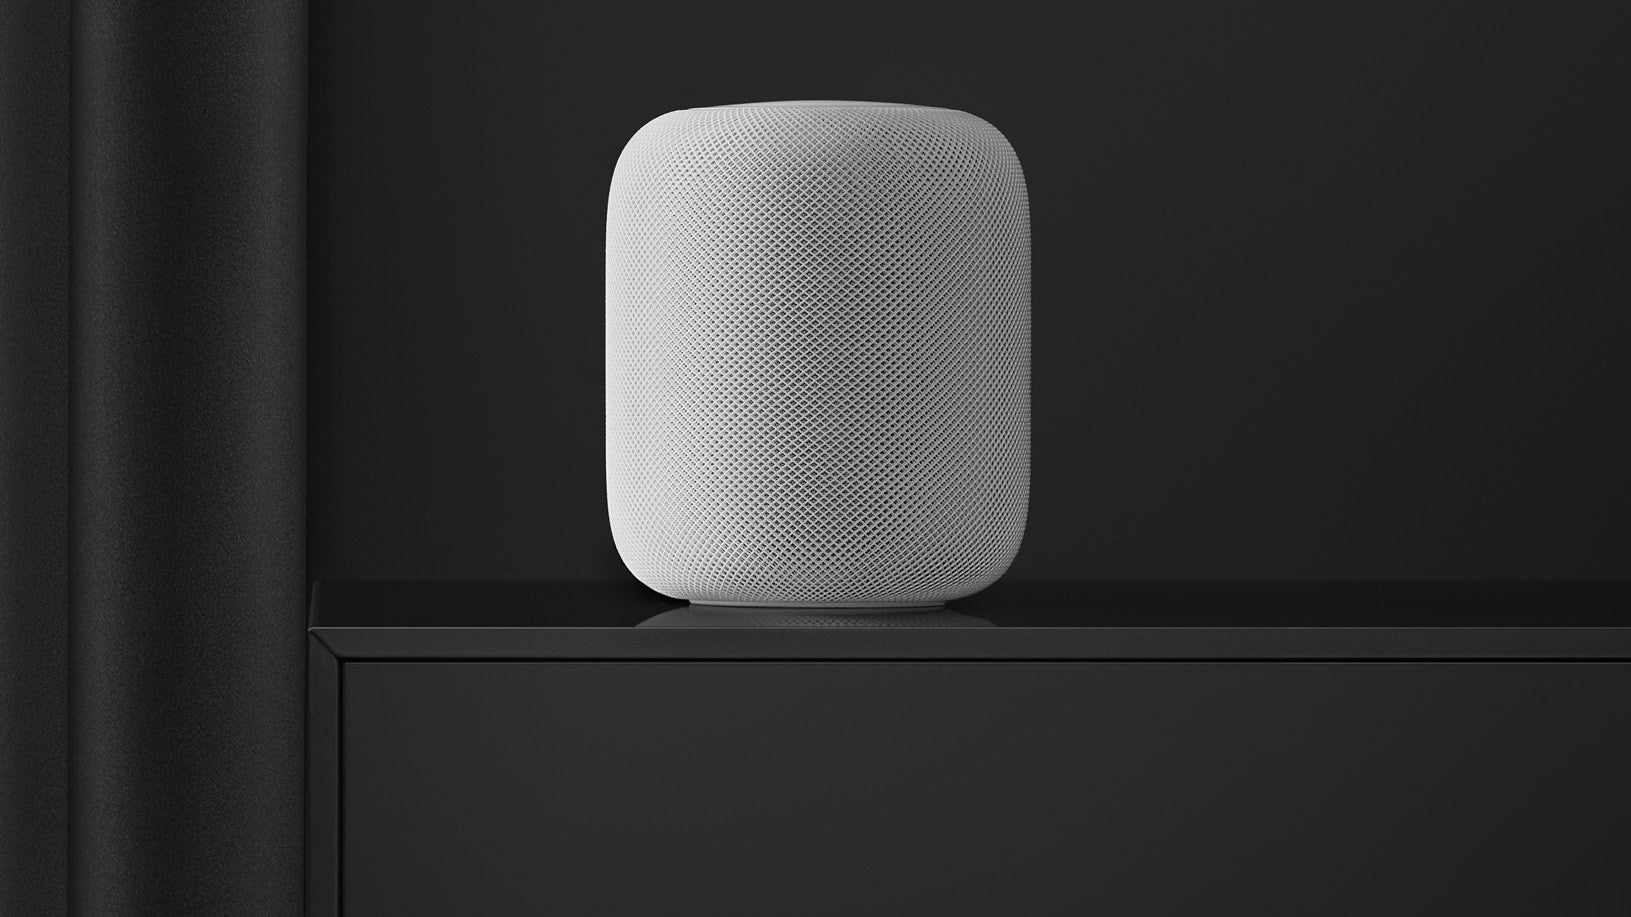 How To Prevent iOS 13.2 From Breaking Your HomePod